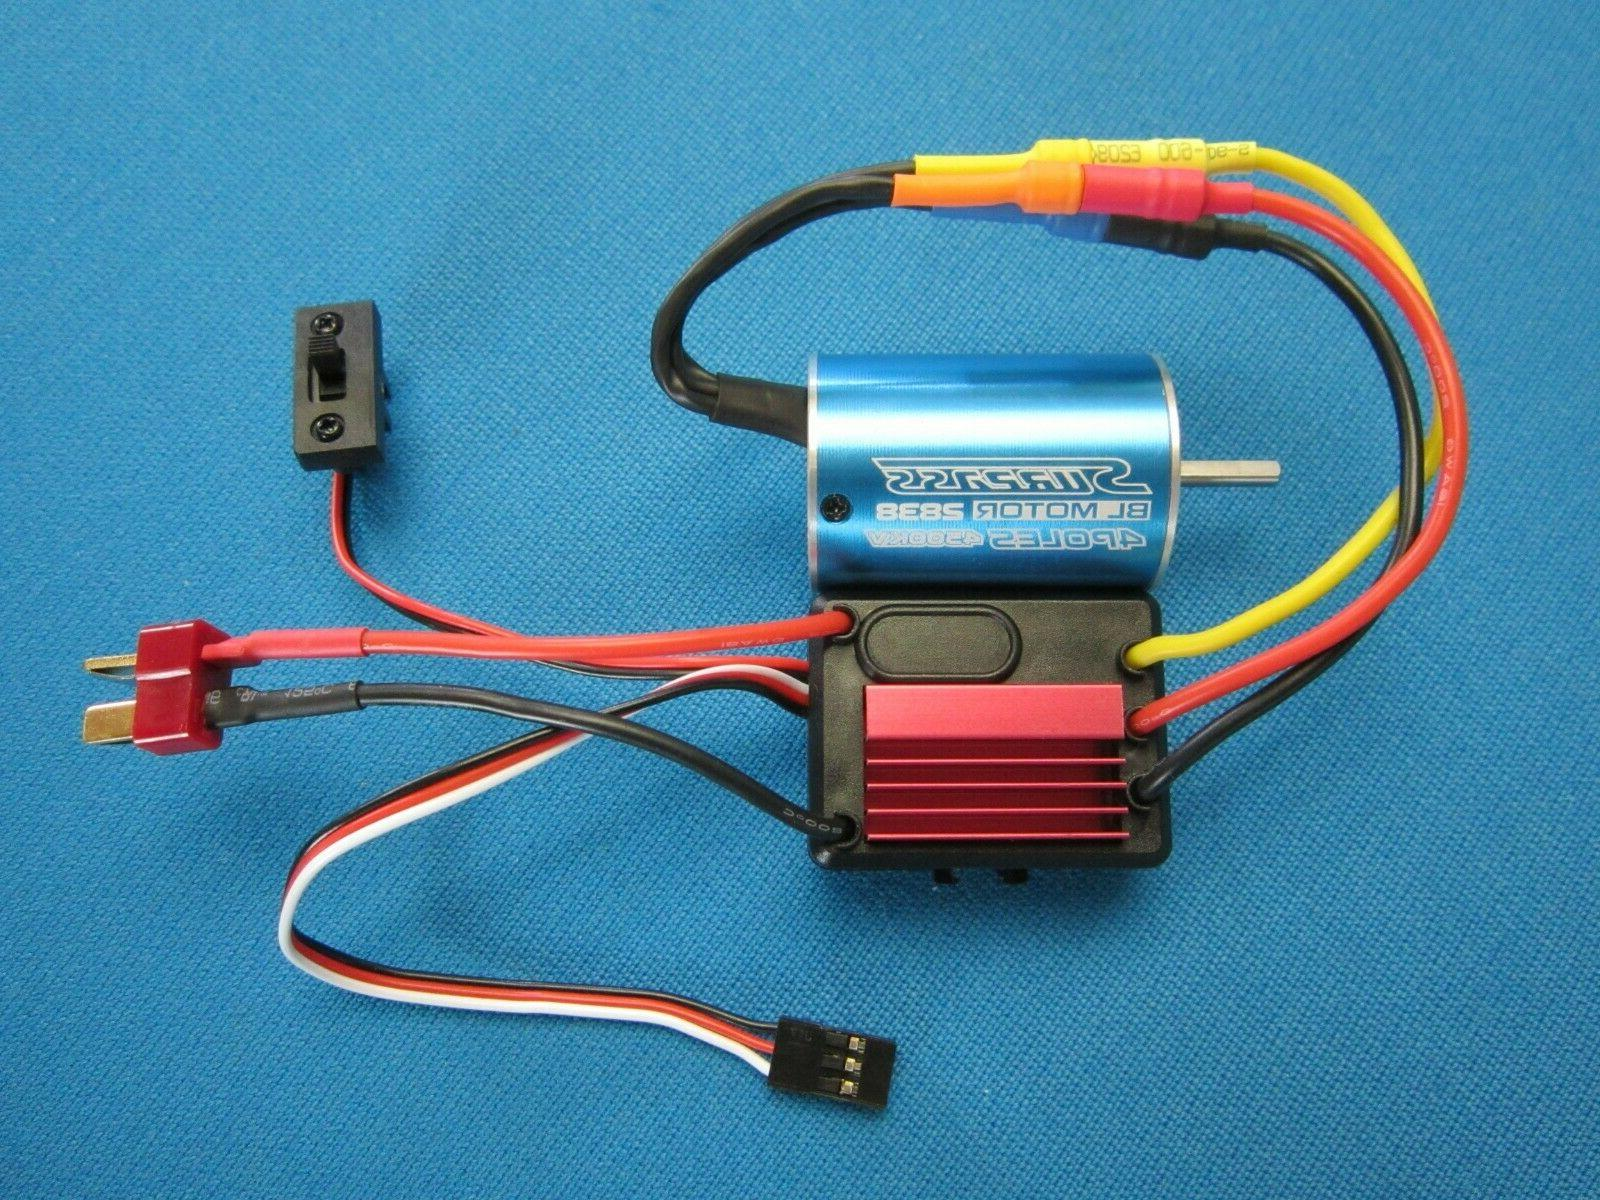 brushless 2838 motor and 35a esc combo